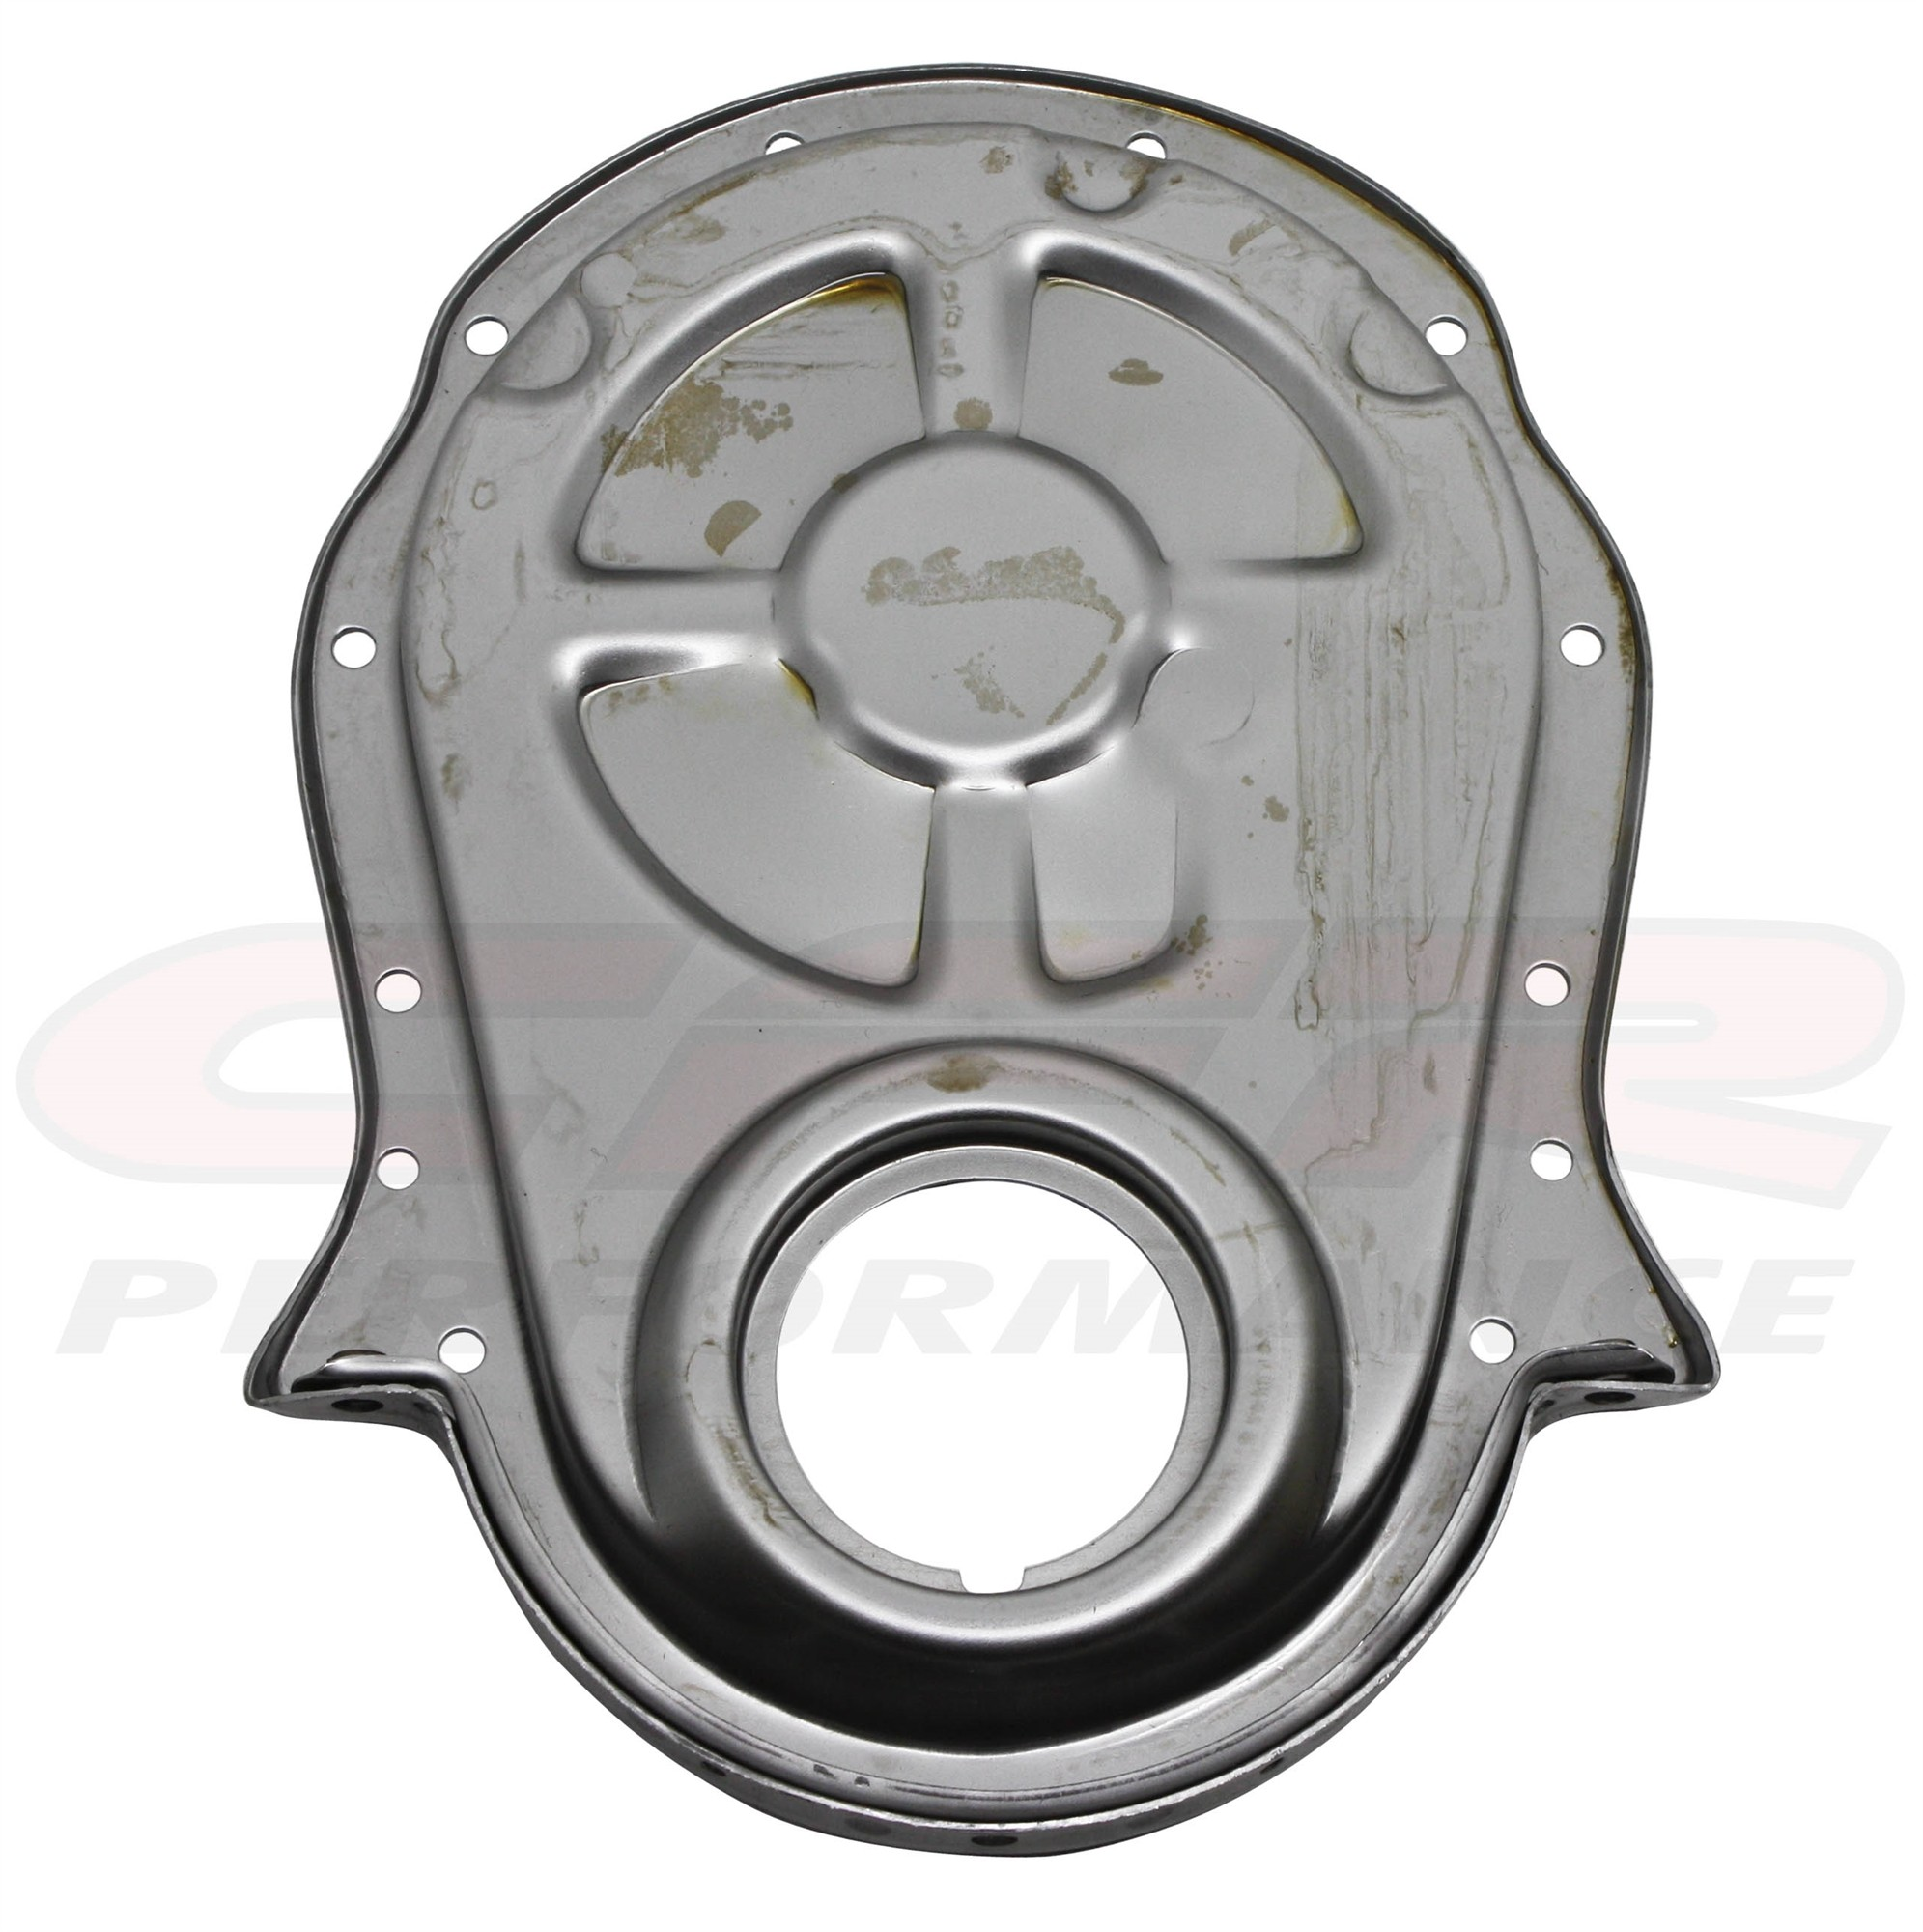 Steel 1966-90 Chevy Bb 396-402-427-454 Timing Chain Cover - Raw